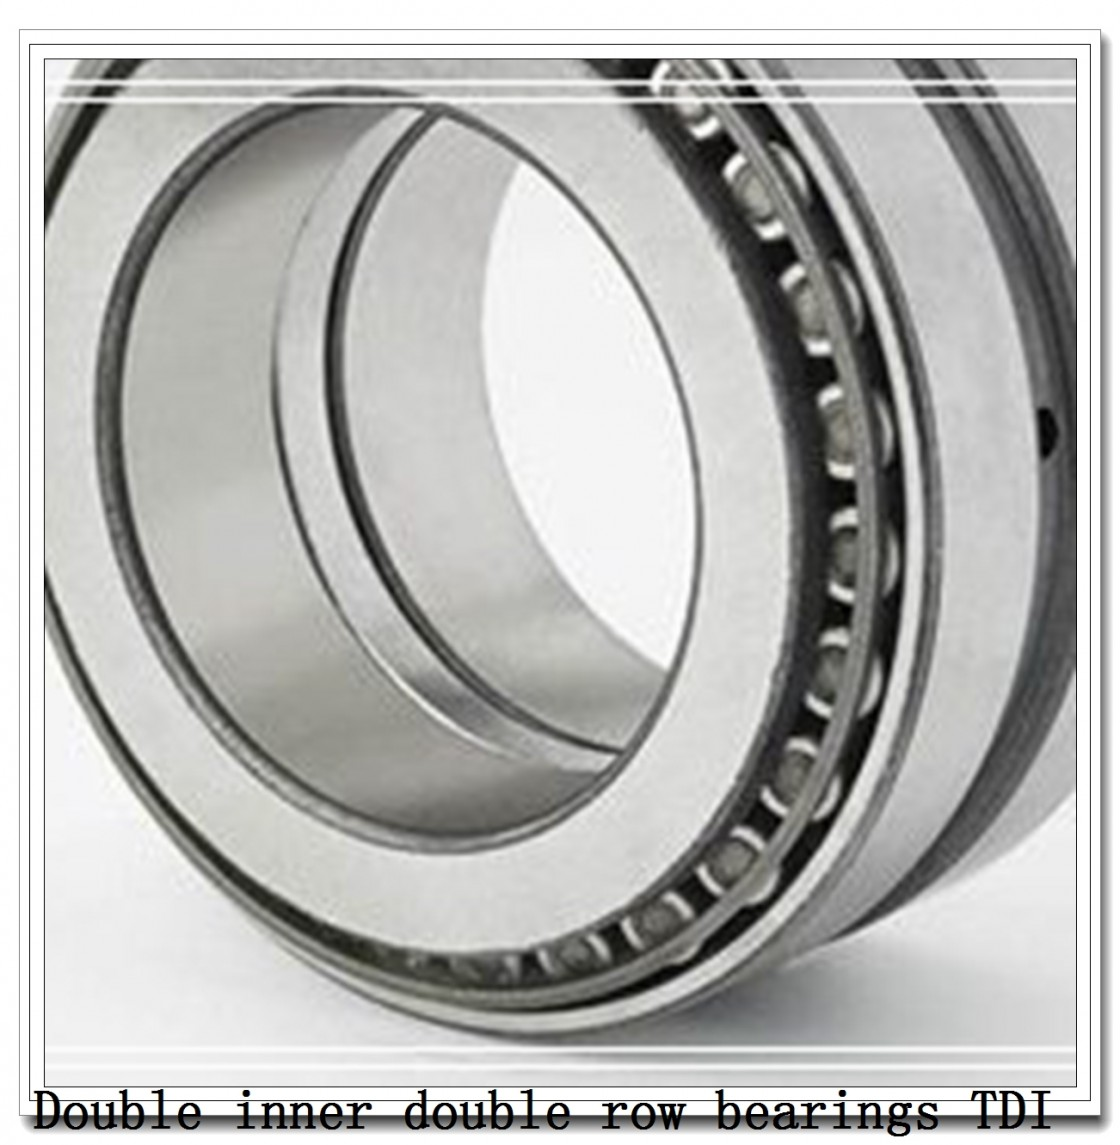 800TDO1280-2 Double inner double row bearings TDI